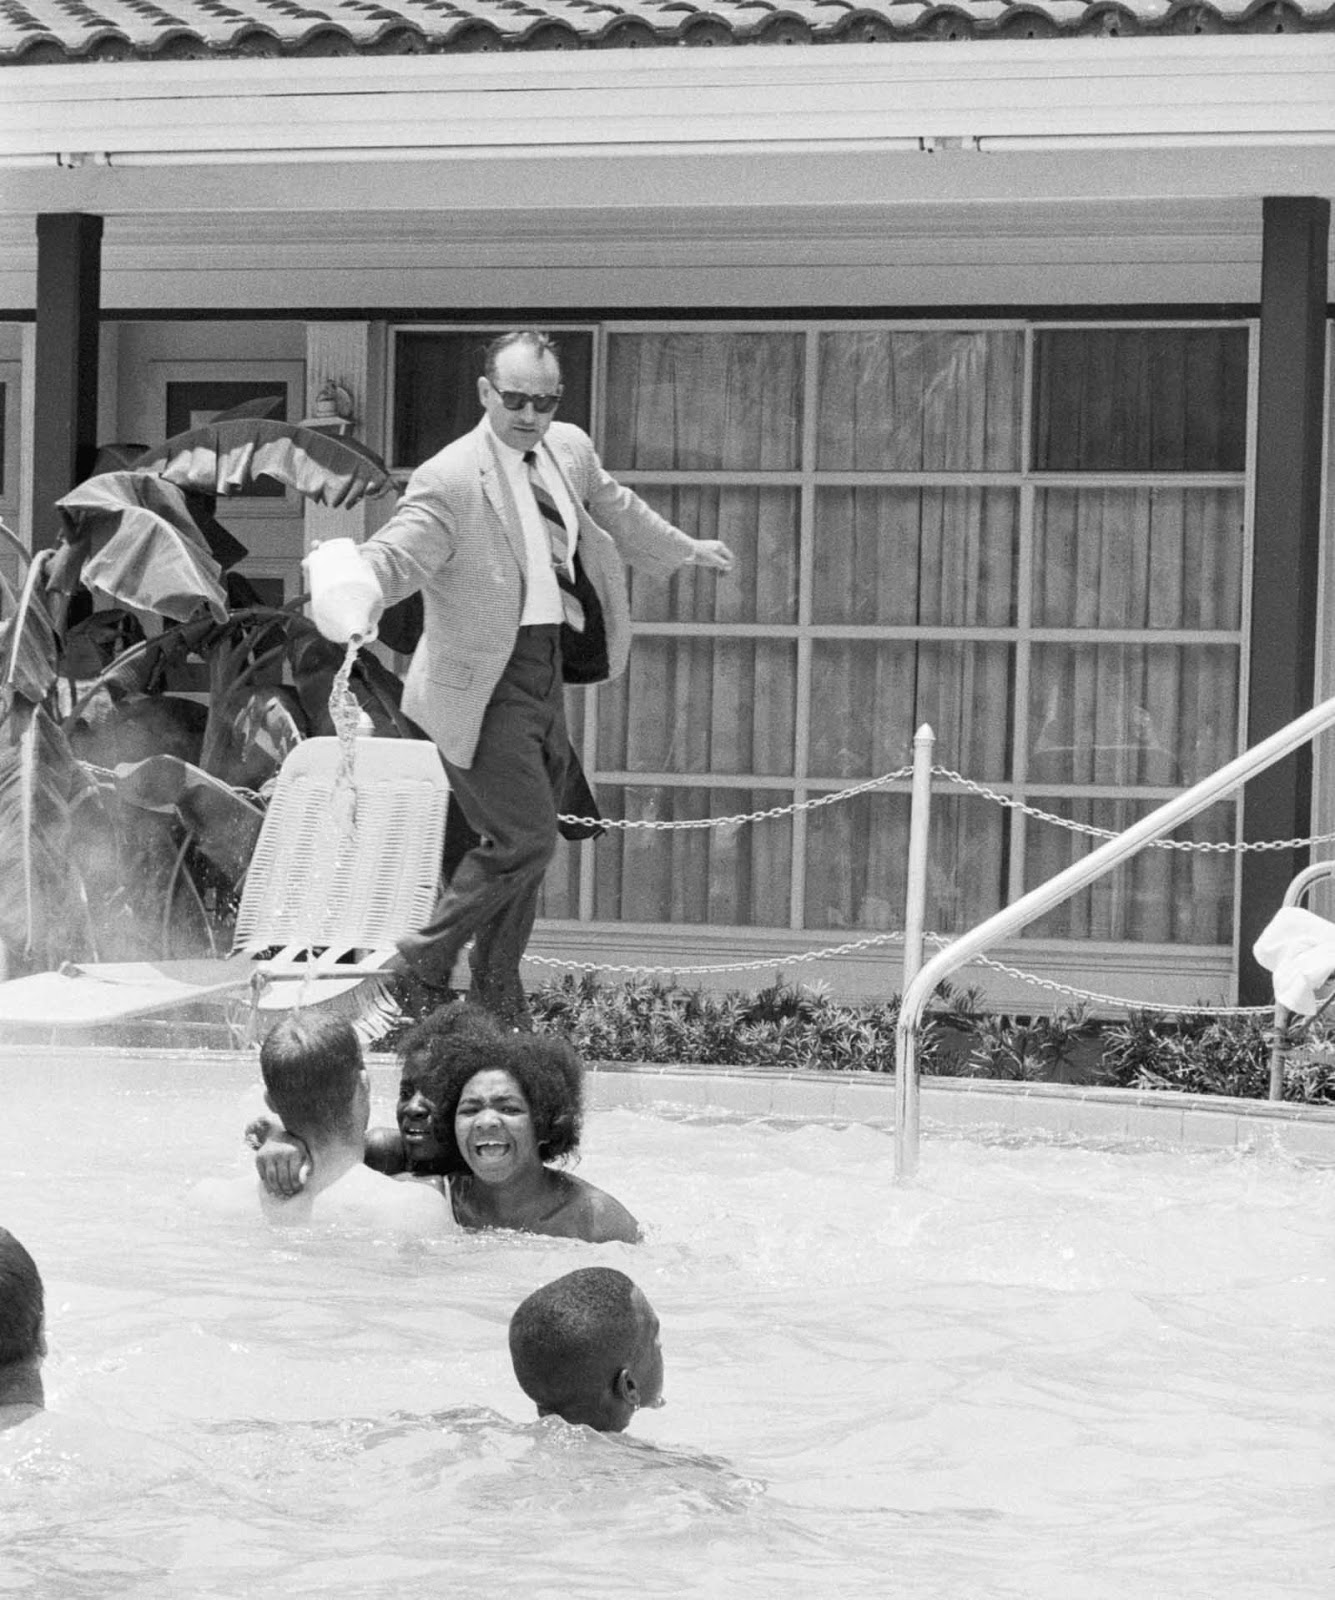 James Brock, the manager of the motel, was photographed pouring muriatic acid into the pool to get the protesters out.